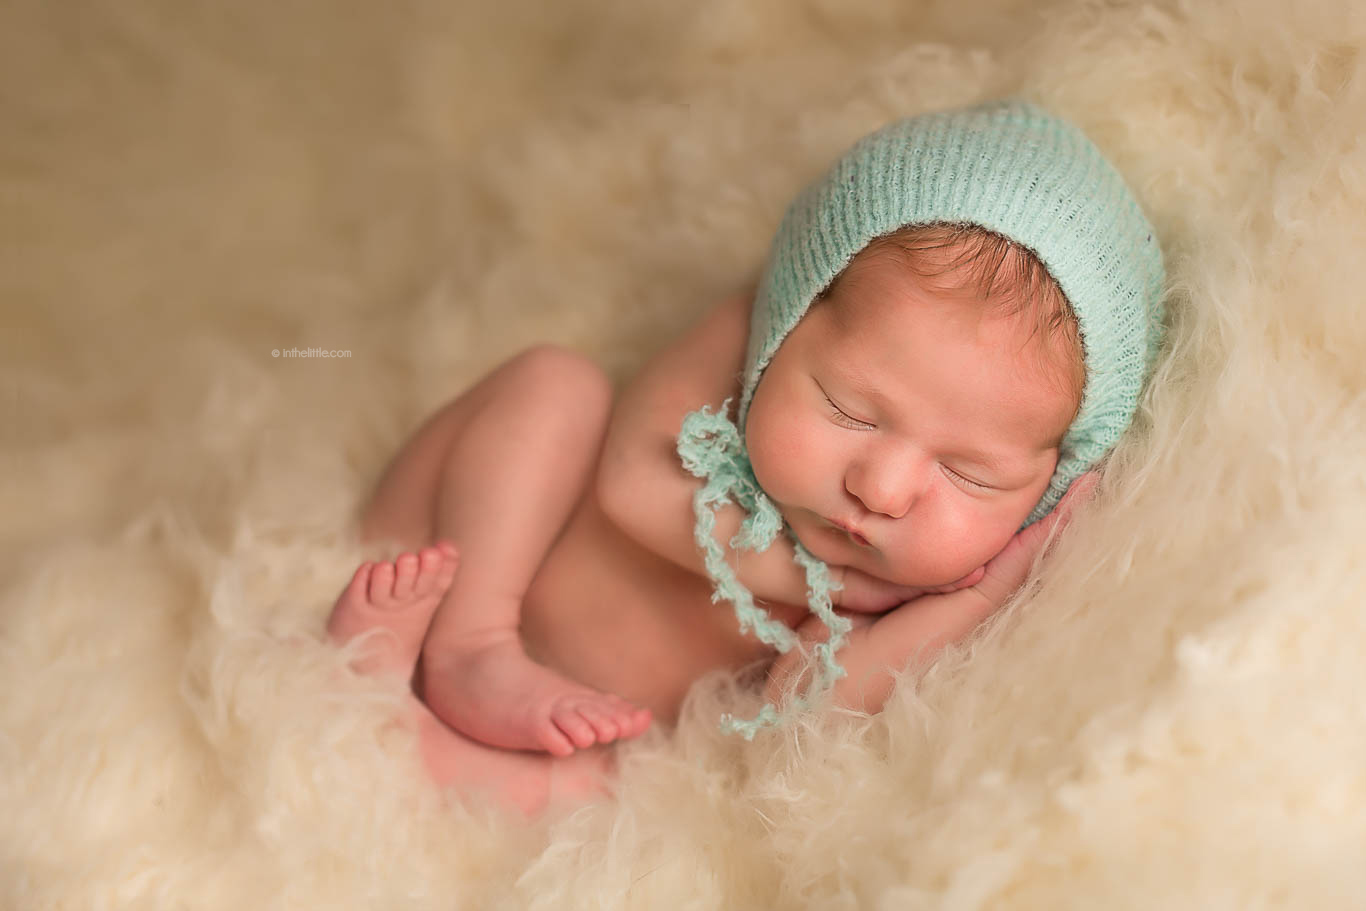 Baby Photographers St. Louis Missouri zipcode 63107